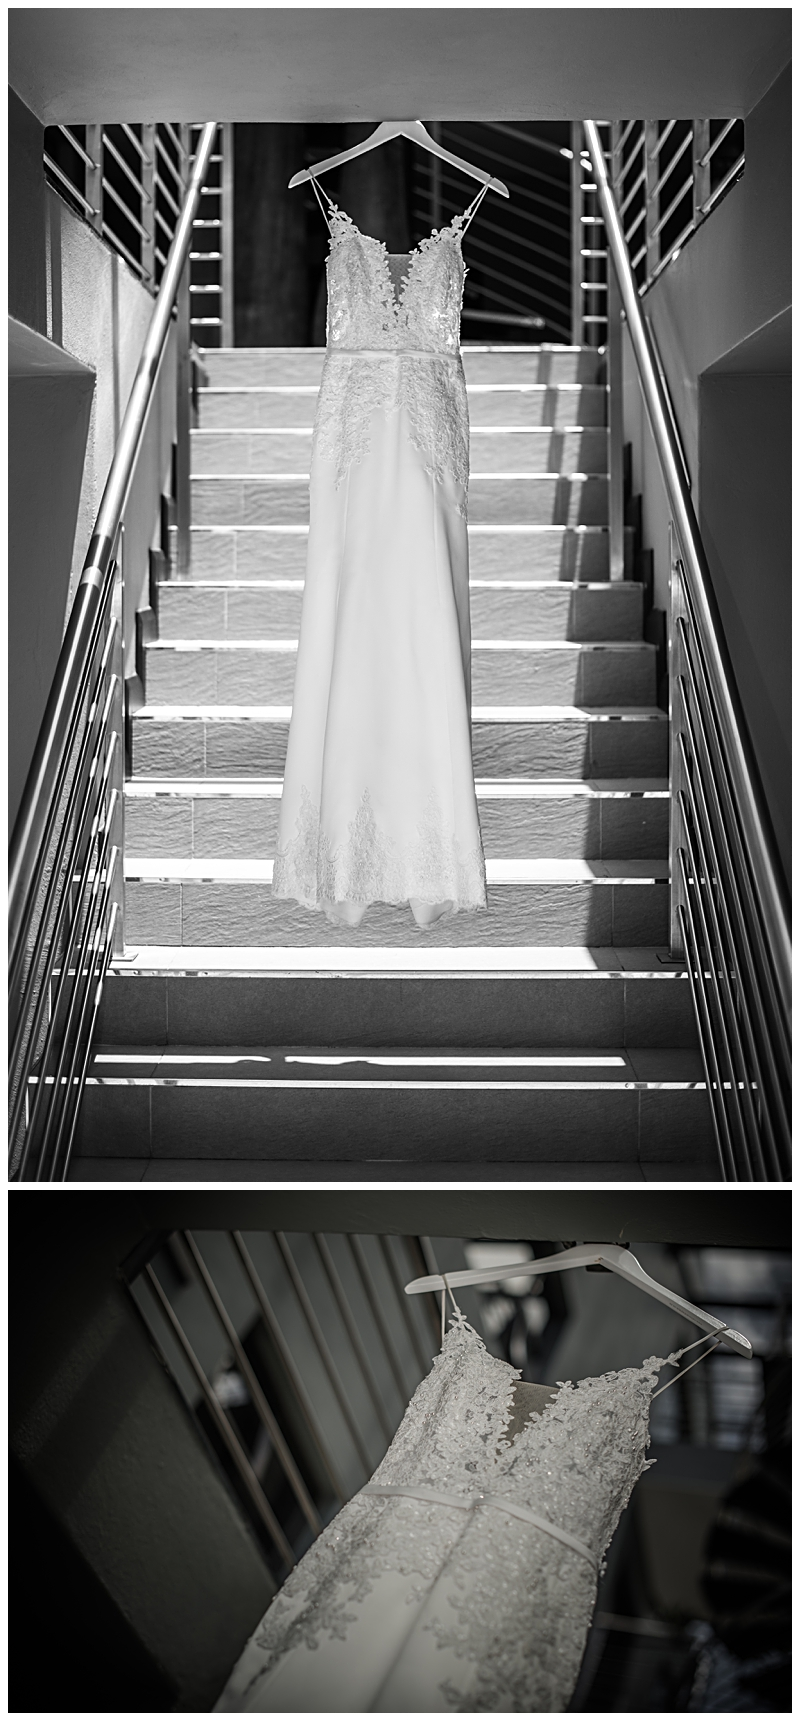 Best wedding photographer - AlexanderSmith_2338.jpg